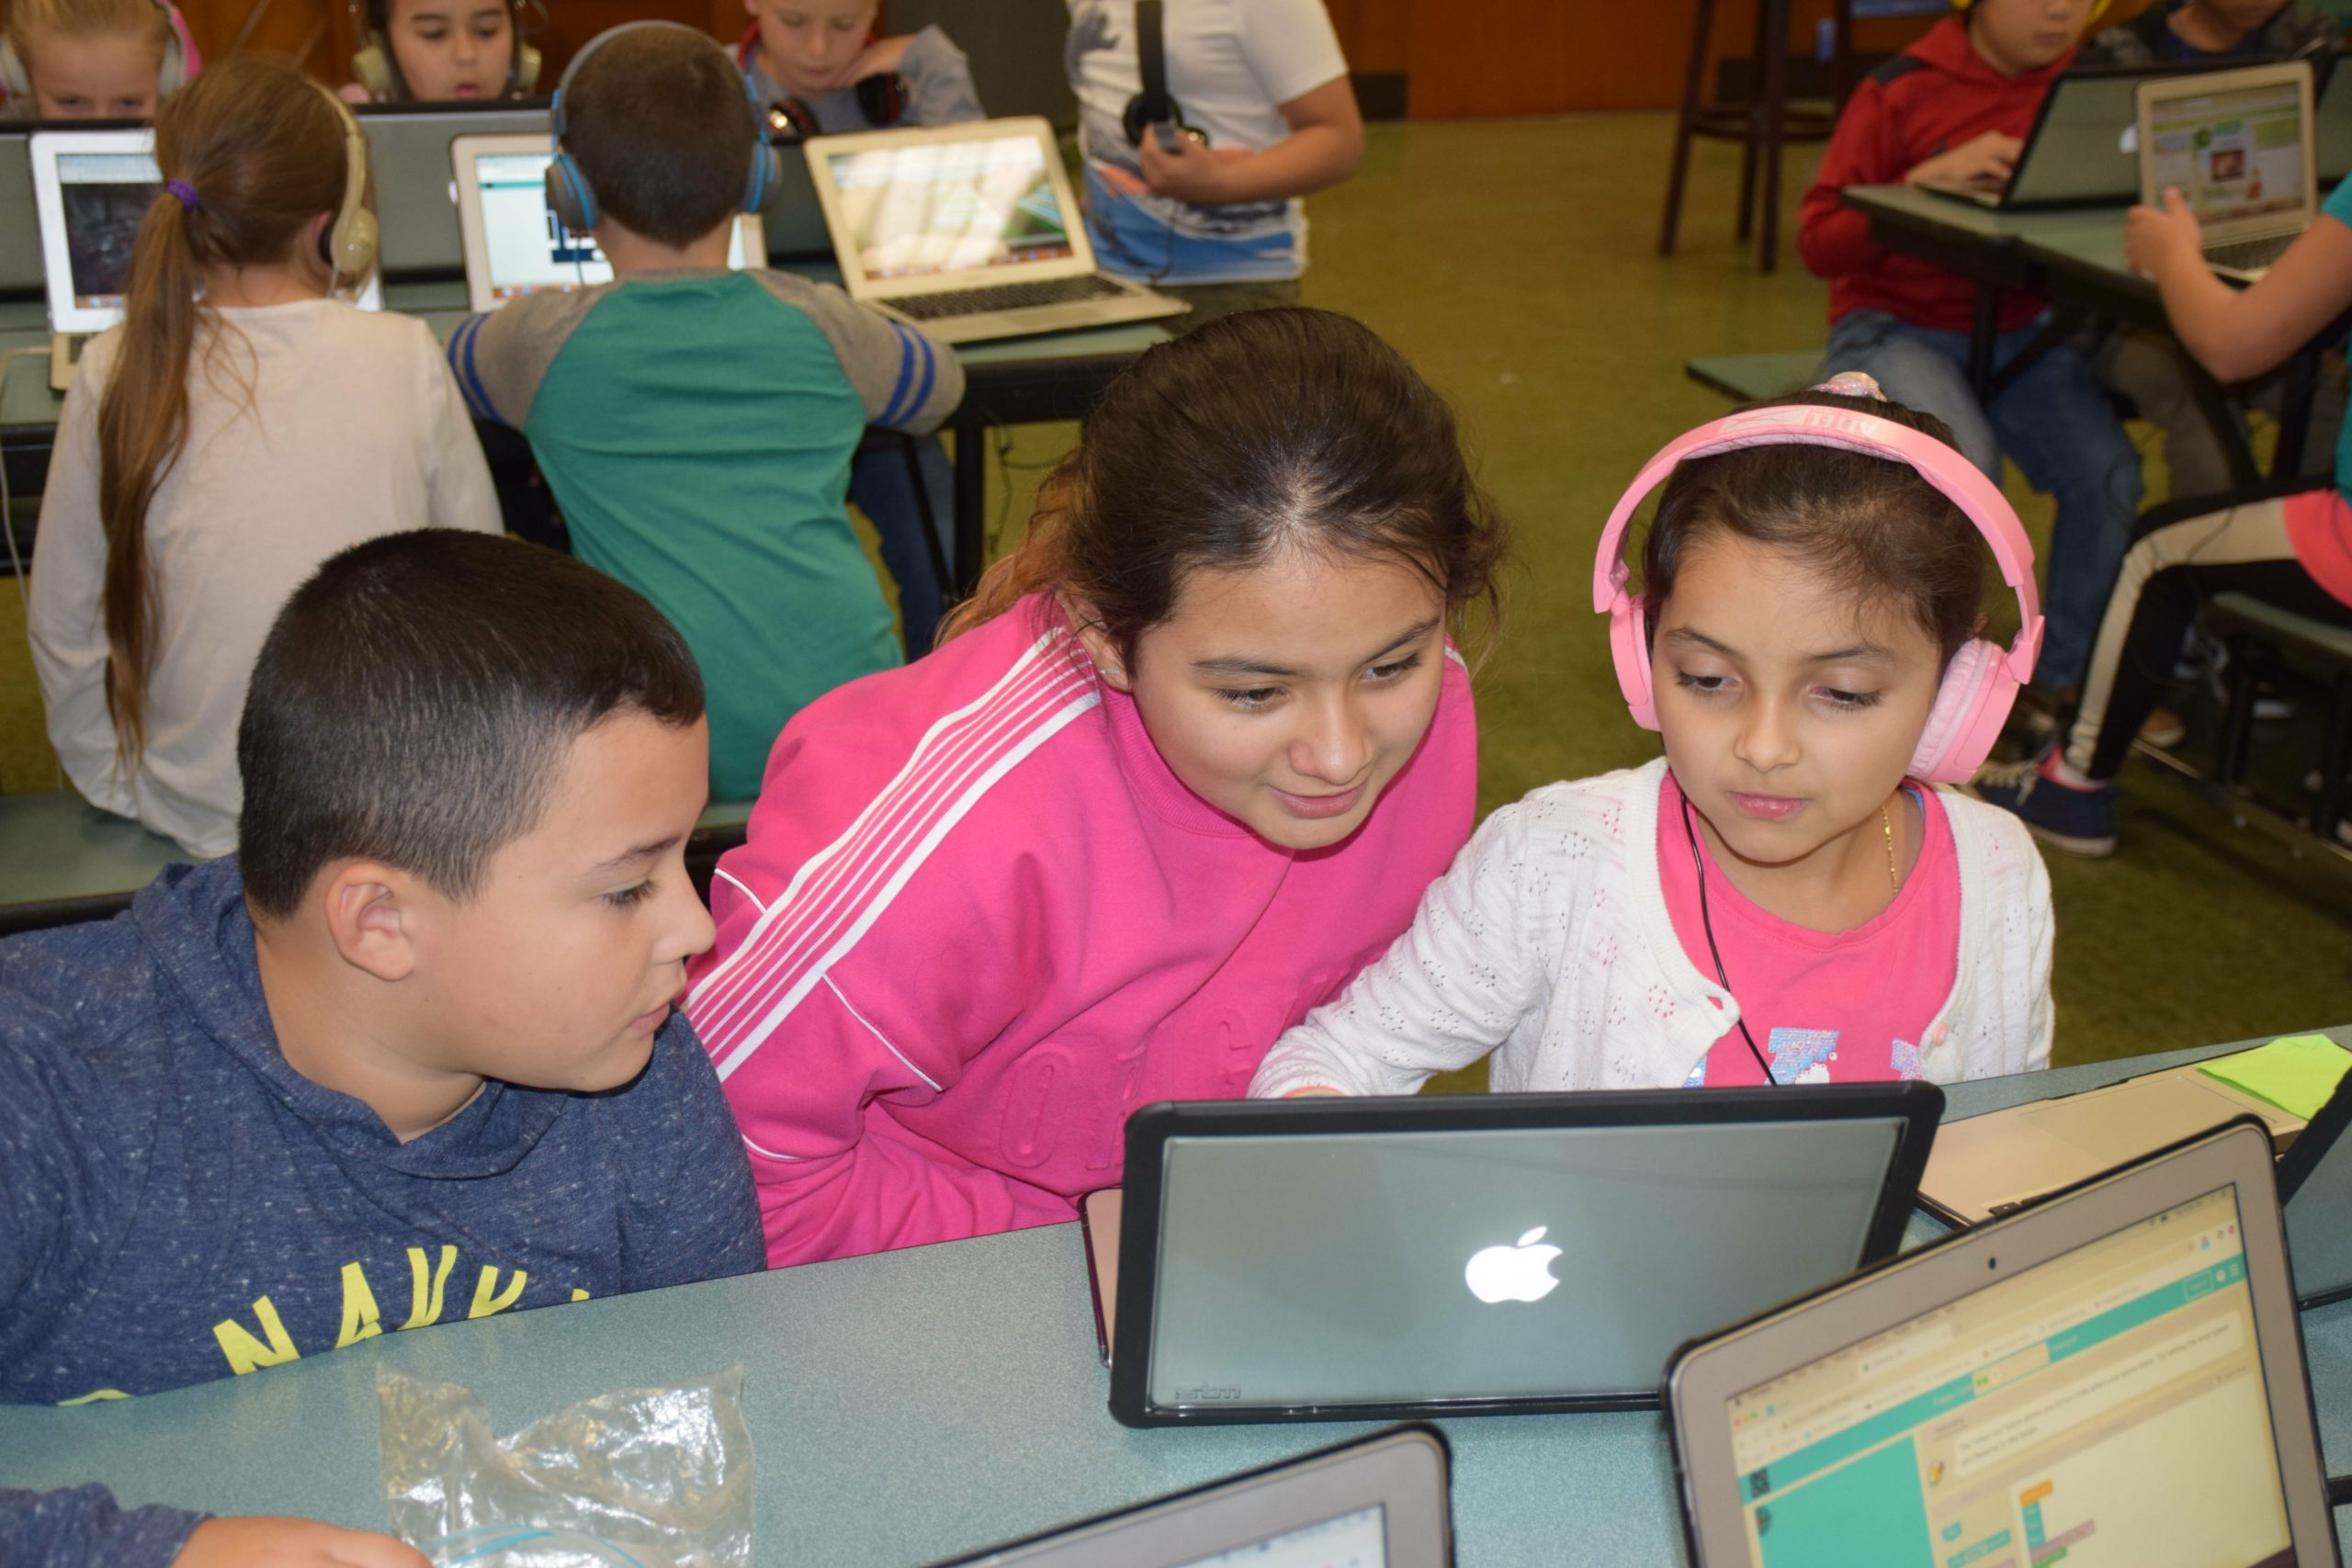 Westhampton Beach Elementary School students, including, from left, Brian Cruz Cordova, Fabiana Rodriquez Flores and Kenna Rogue Gutierrez, participated in an Hour of Code during Computer Science Education Week.